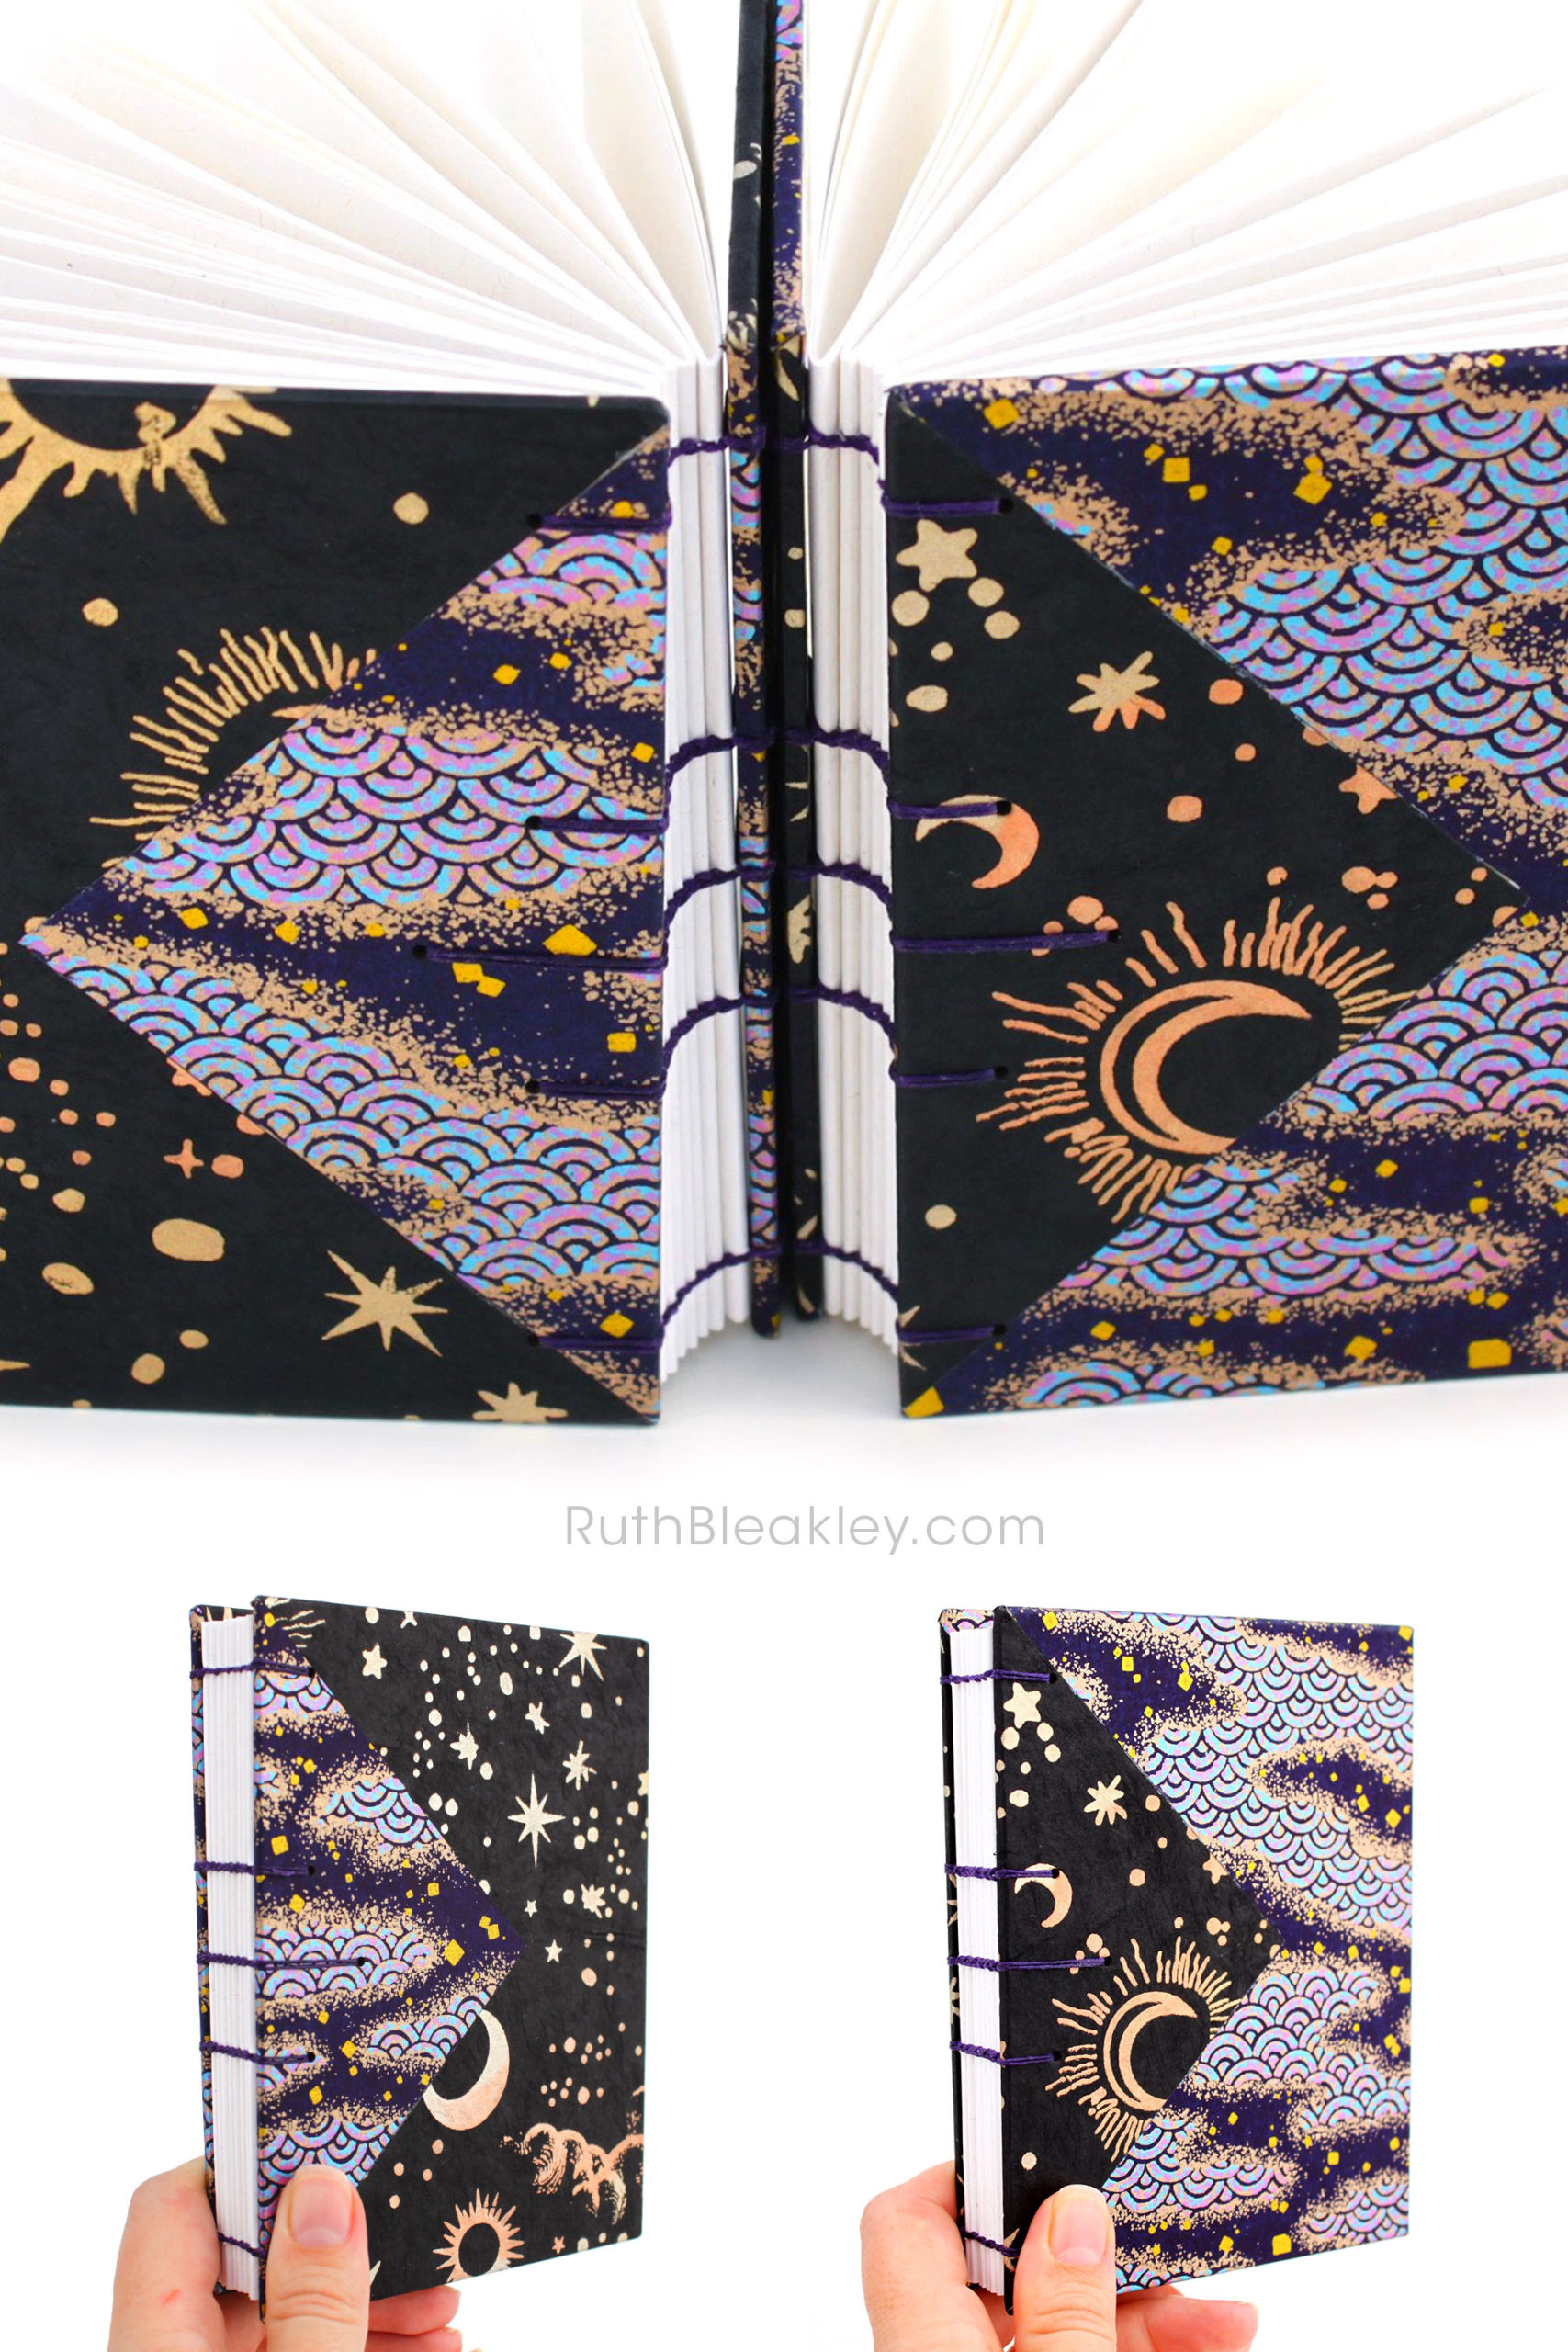 Two black and purple handmade journals by Ruth Bleakley with cosmic imagery